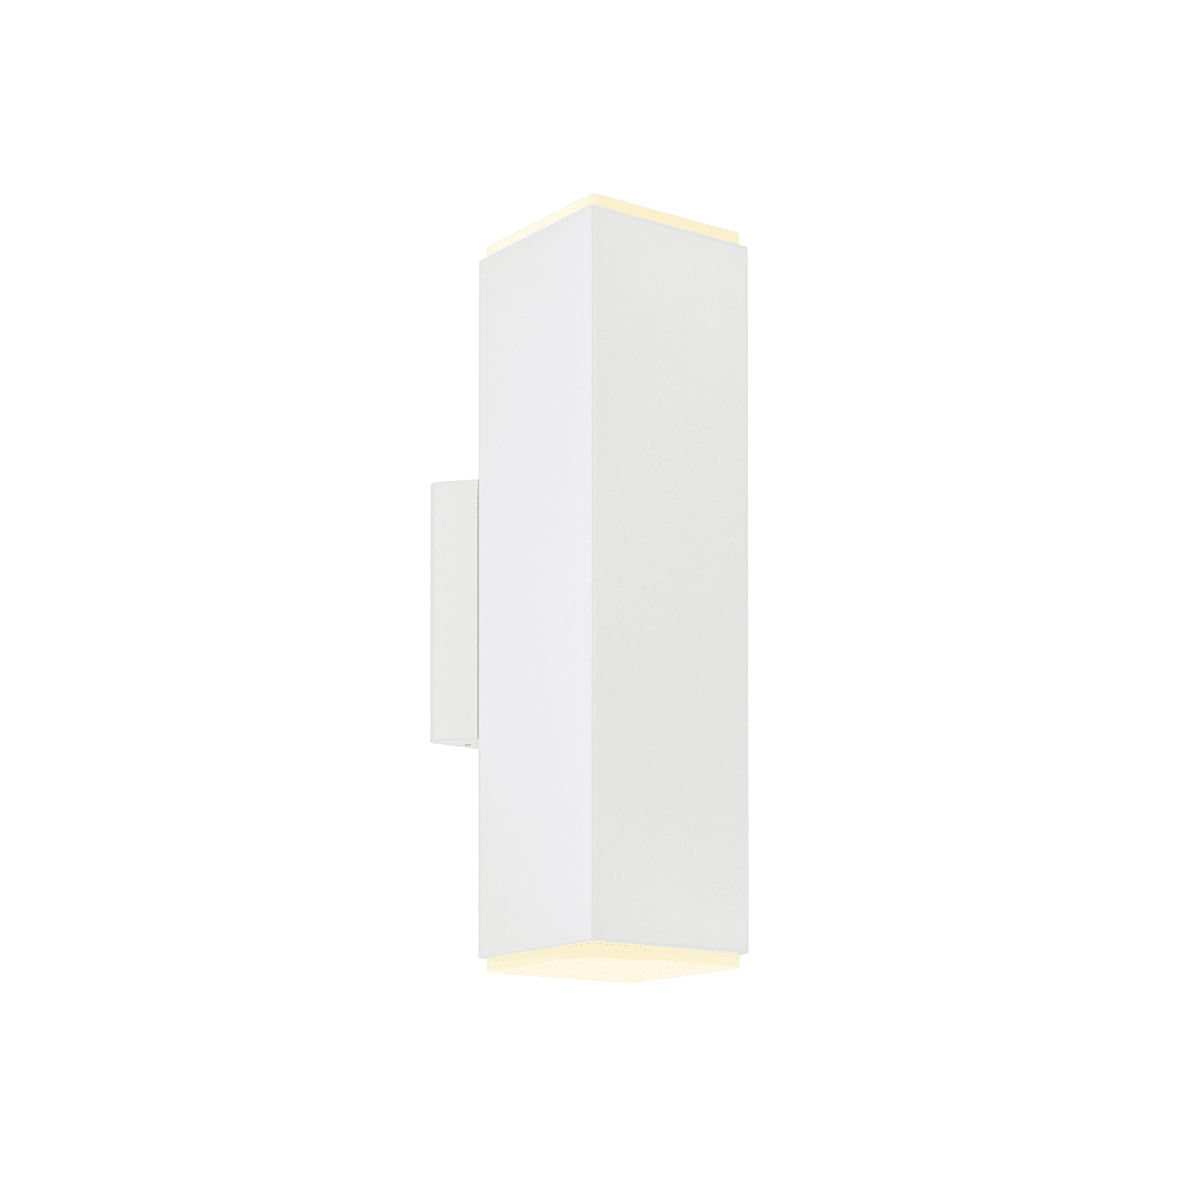 Image of: Dals Lighting Ledwall B Wh White 12 Tall 2 Light Led Outdoor Wall Sconce With Adjustable Beam Options Lightingshowplace Com